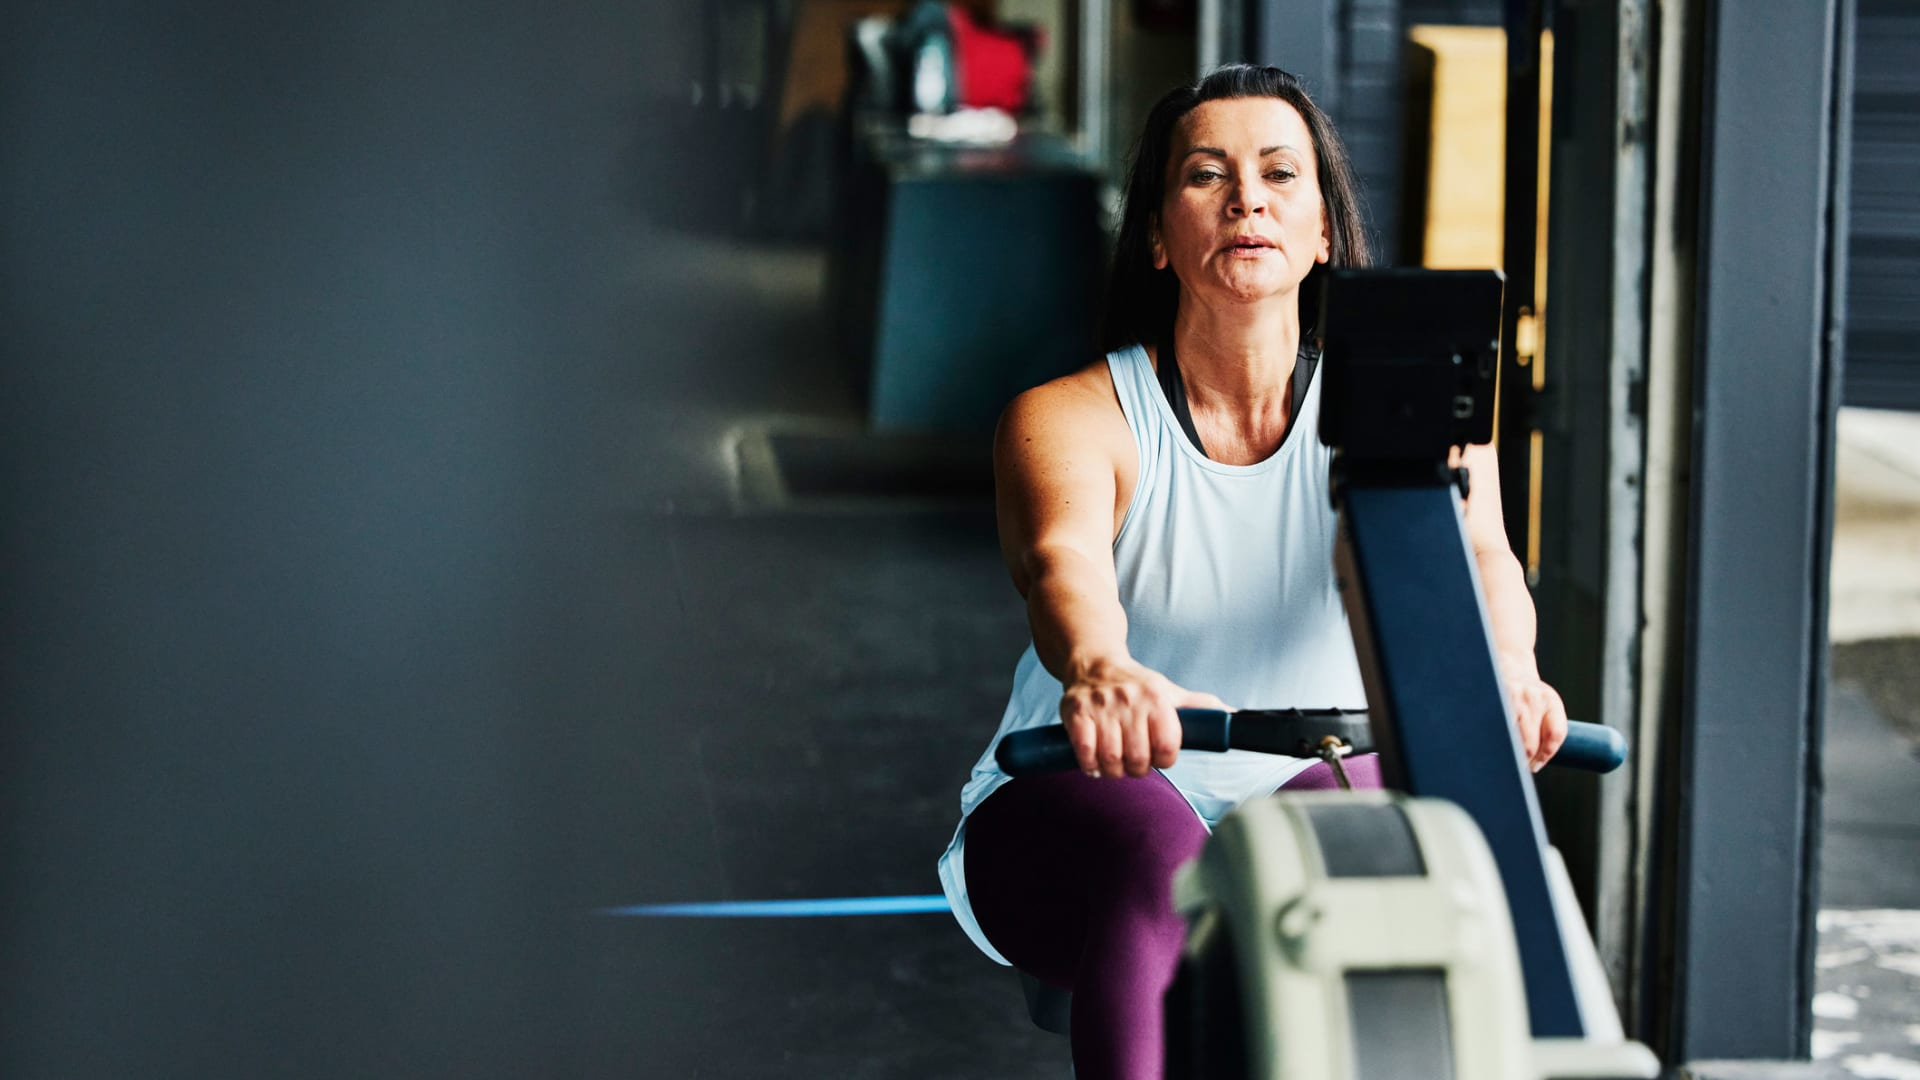 After Covid Closures, Americans Are Starting to Break Out of Their Home Gyms